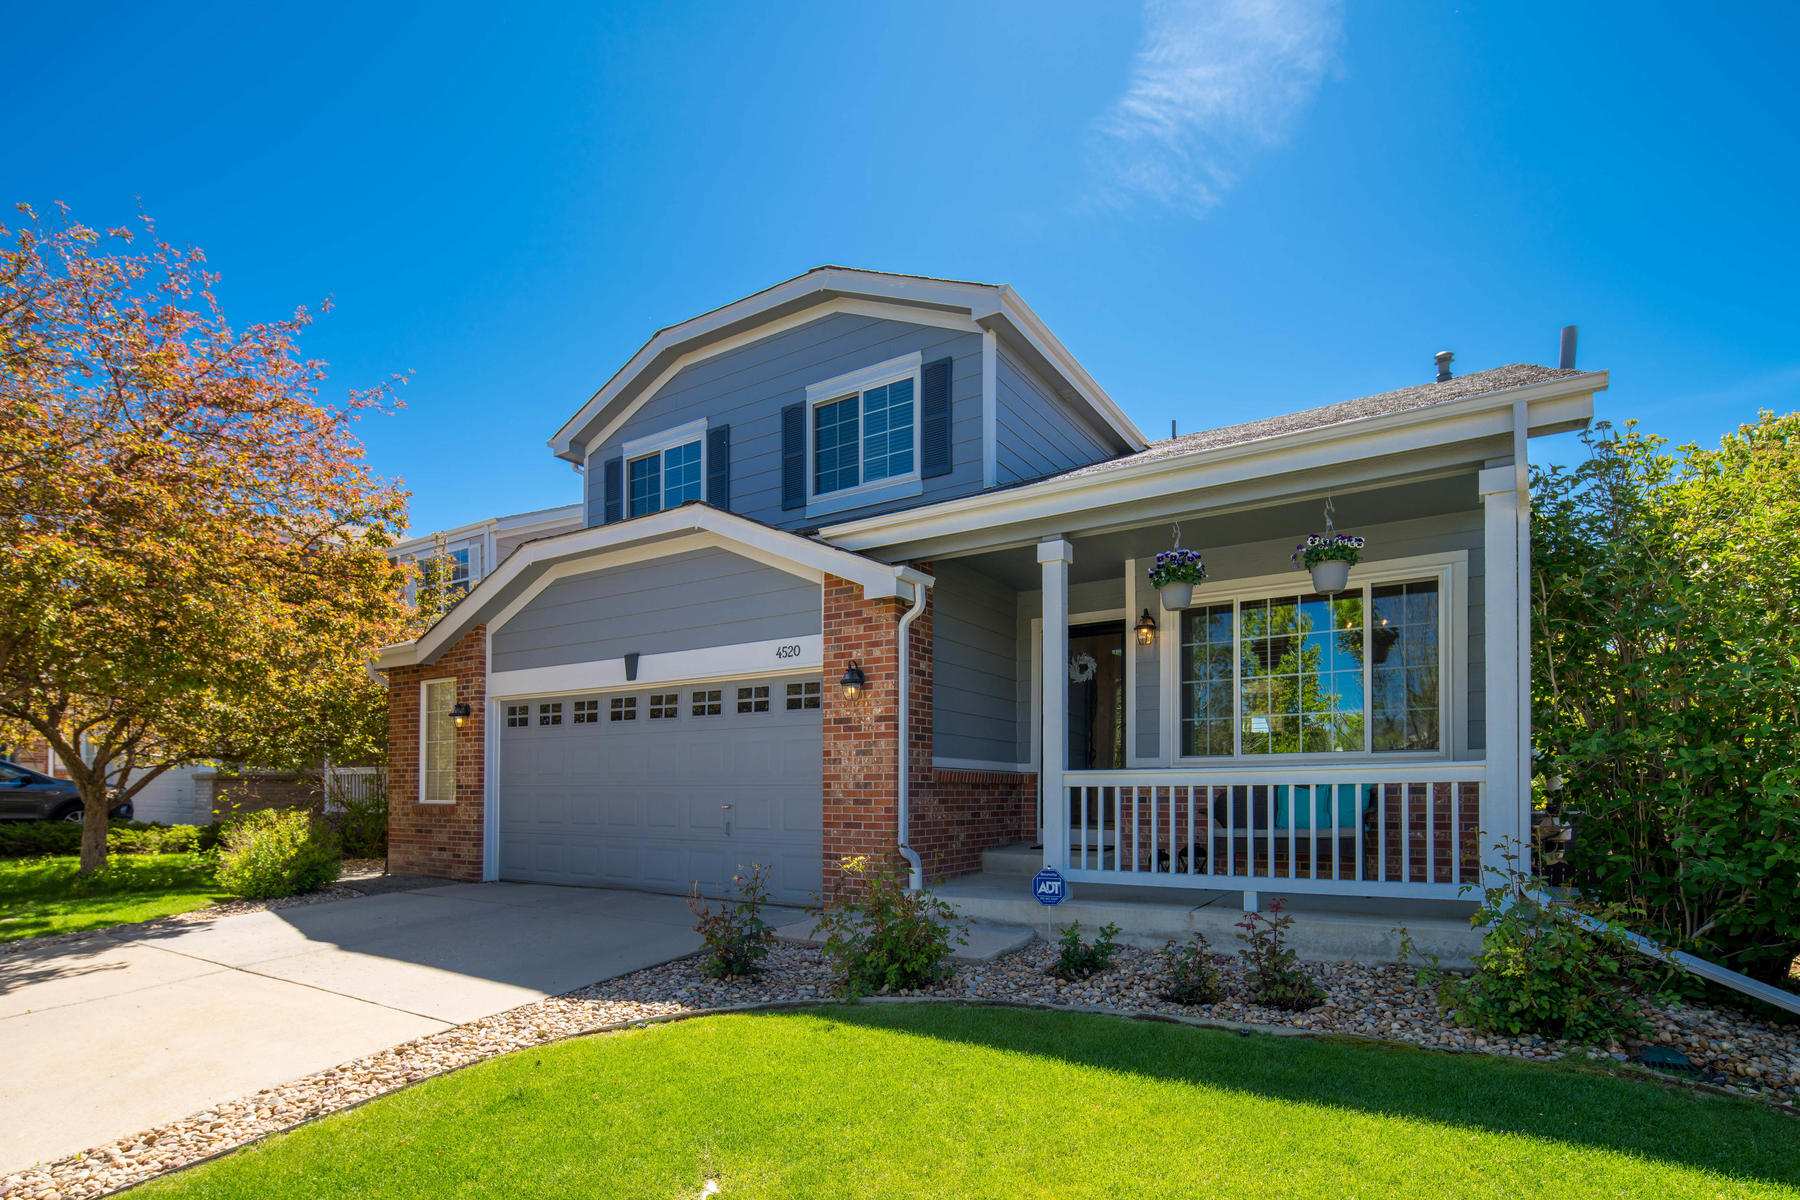 Single Family Homes for Sale at Welcome To Your Future Home In The Broadlands 4520 Lexi Cir Broomfield, Colorado 80023 United States